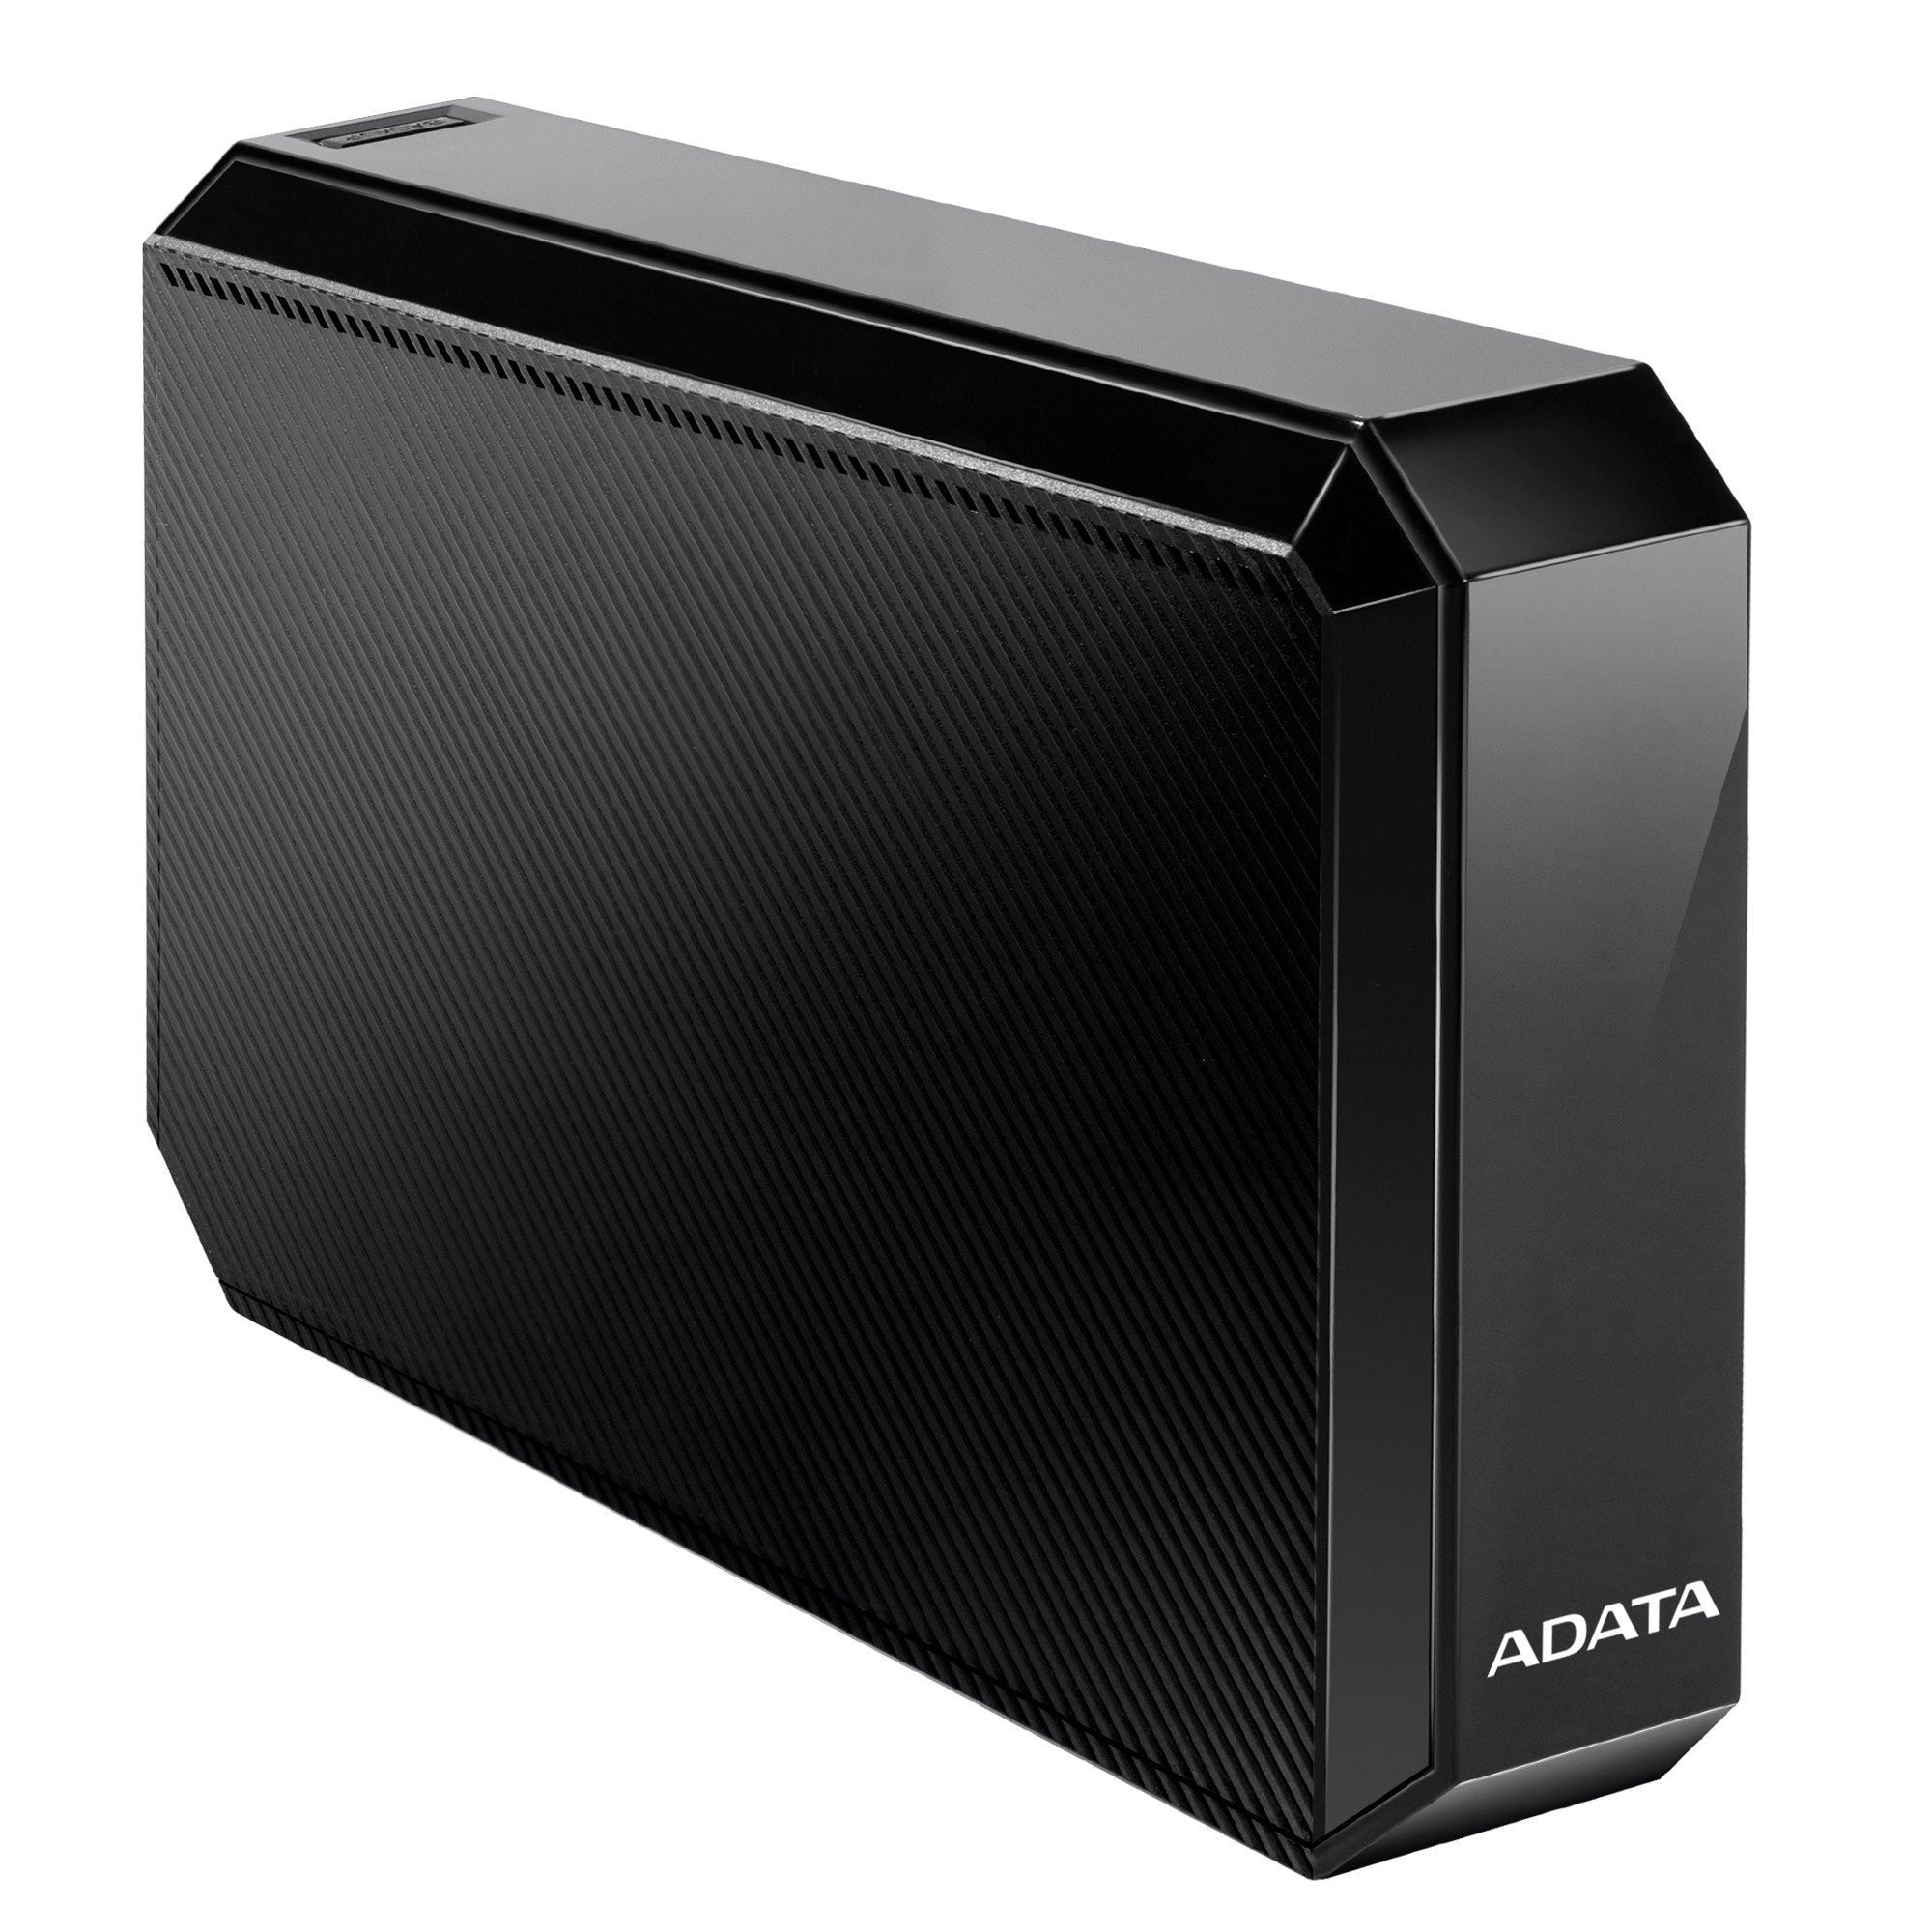 Computer Cases & Housings, Multiroom, Sound, Audio, Loudspeaker, Electronics Accessory, Sound reinforcement system, Subwoofer, Audio signal, Product, sound box, Electronic device, Technology, Material property, Loudspeaker, Audio equipment, Multimedia, Output device, Gadget, Rectangle